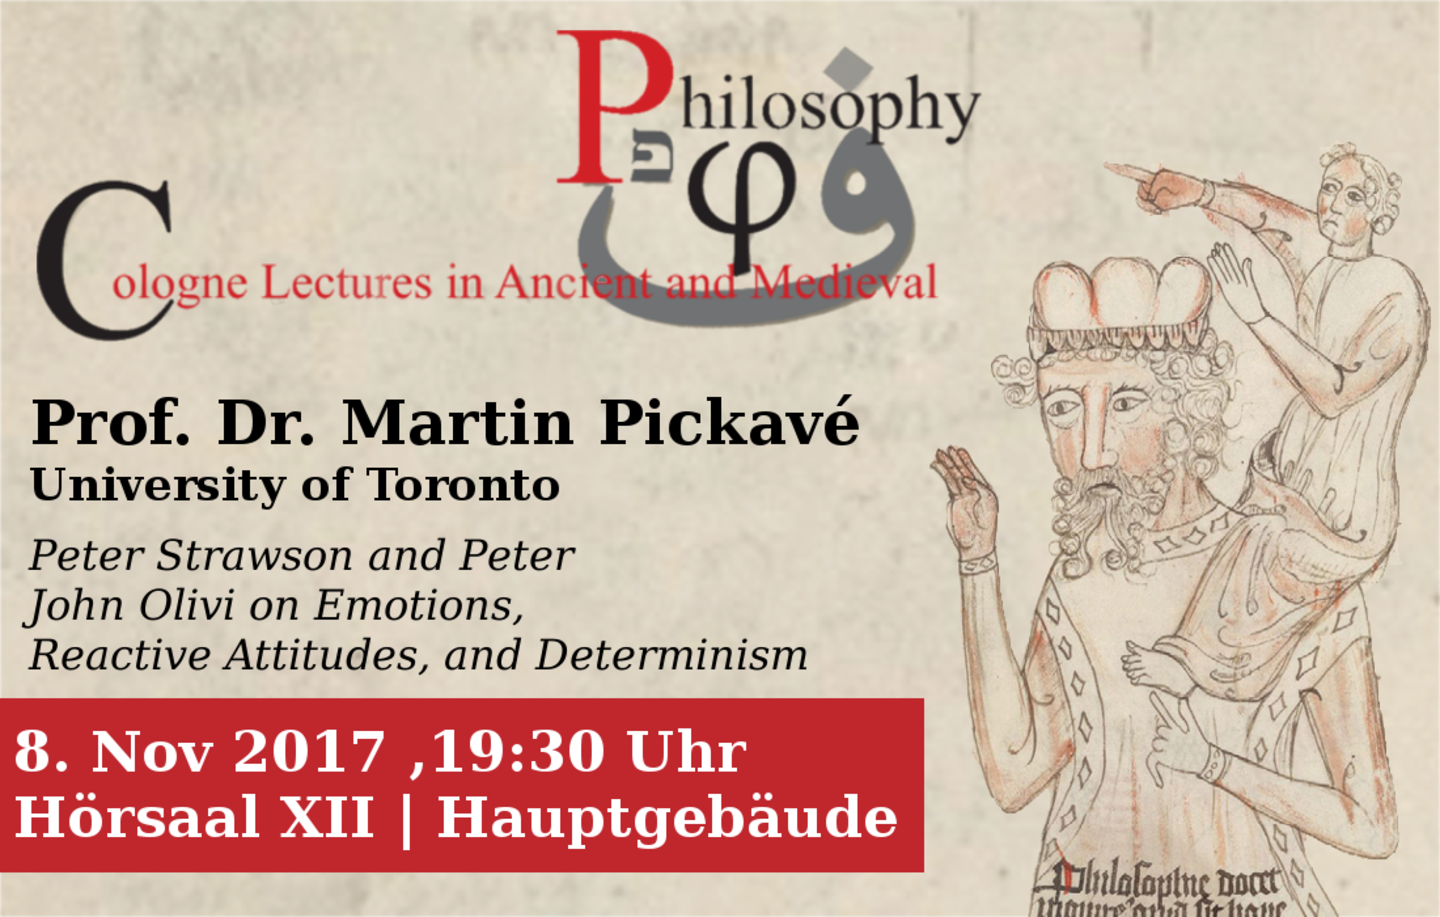 Cologne Lectures on Ancient and Medieval Philosophy